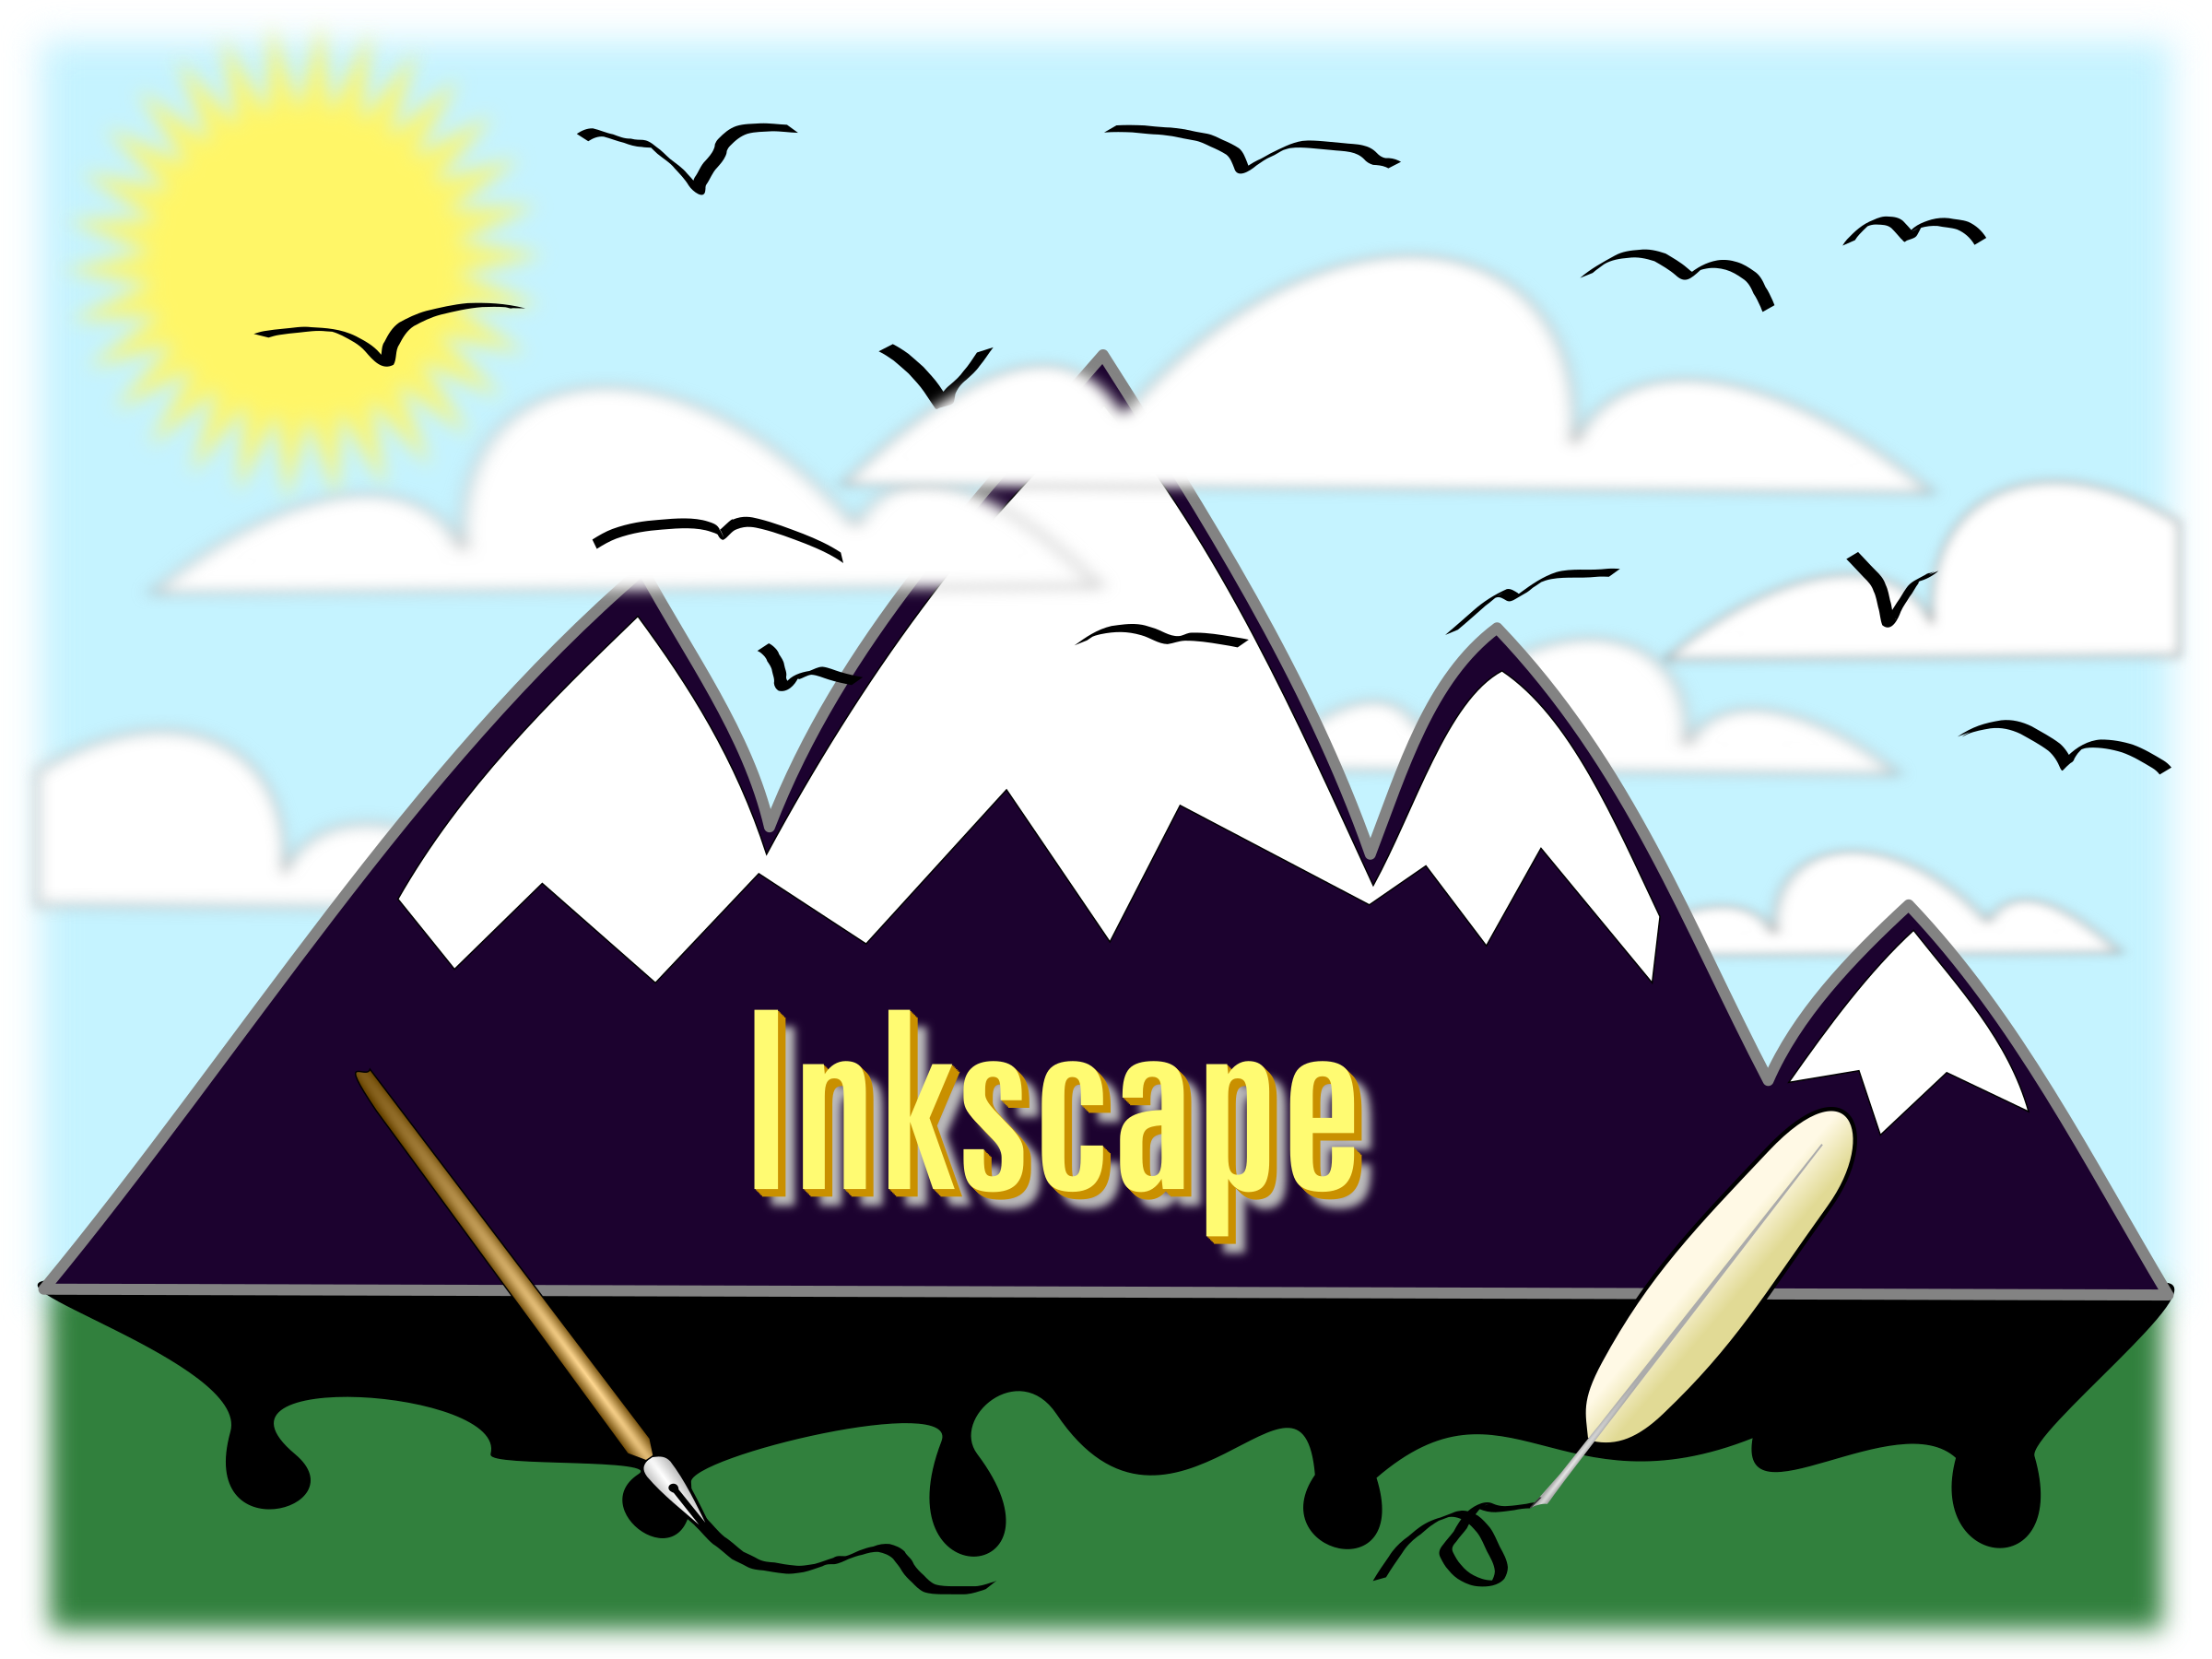 Inkscape Landscape 1 by Sonshine_Penguin